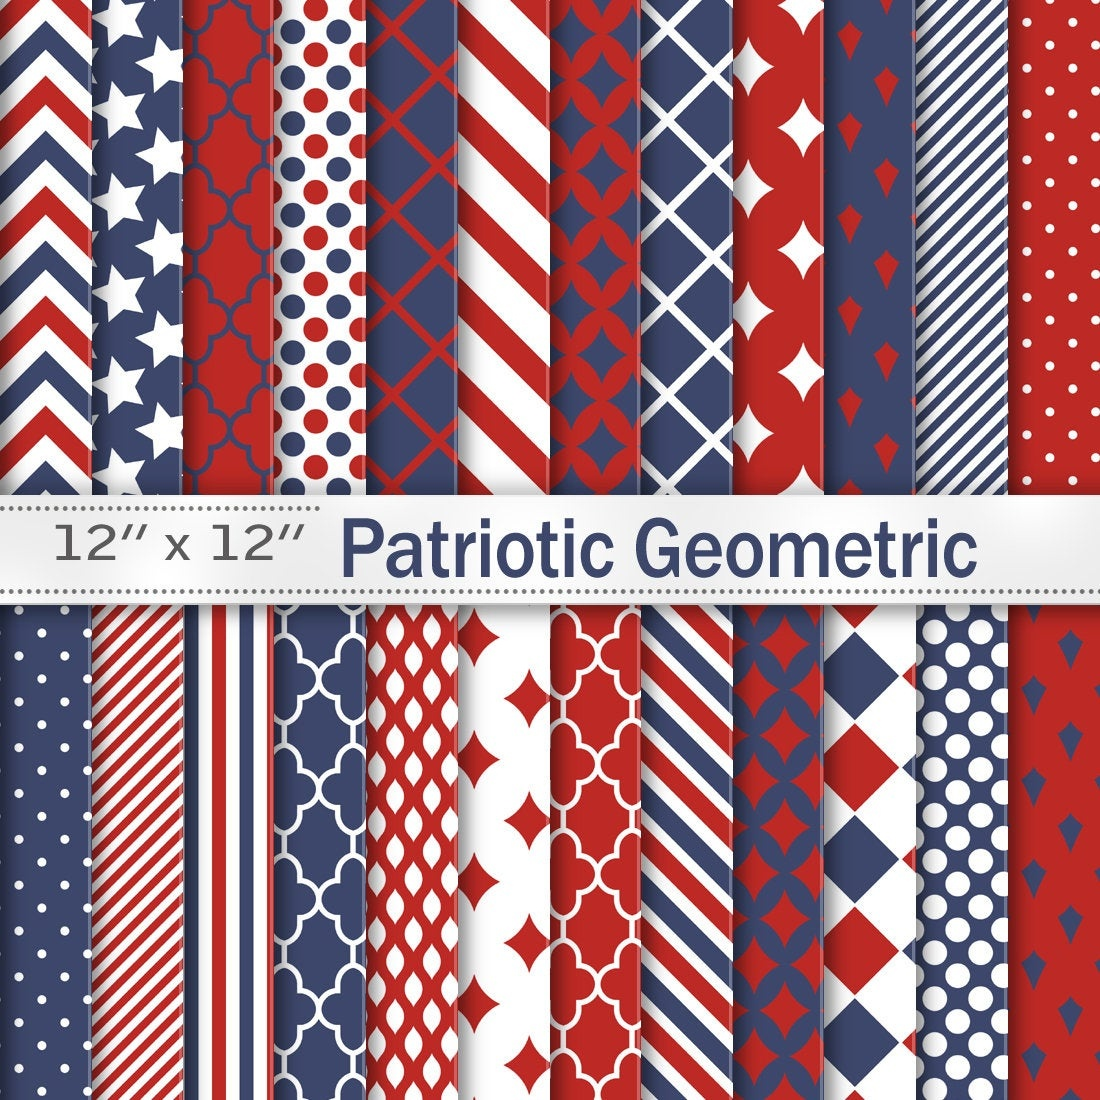 Patriotic 4Th Of July Digital Scrapbook Papers Red Navy | Etsy - Free Printable Patriotic Scrapbook Paper